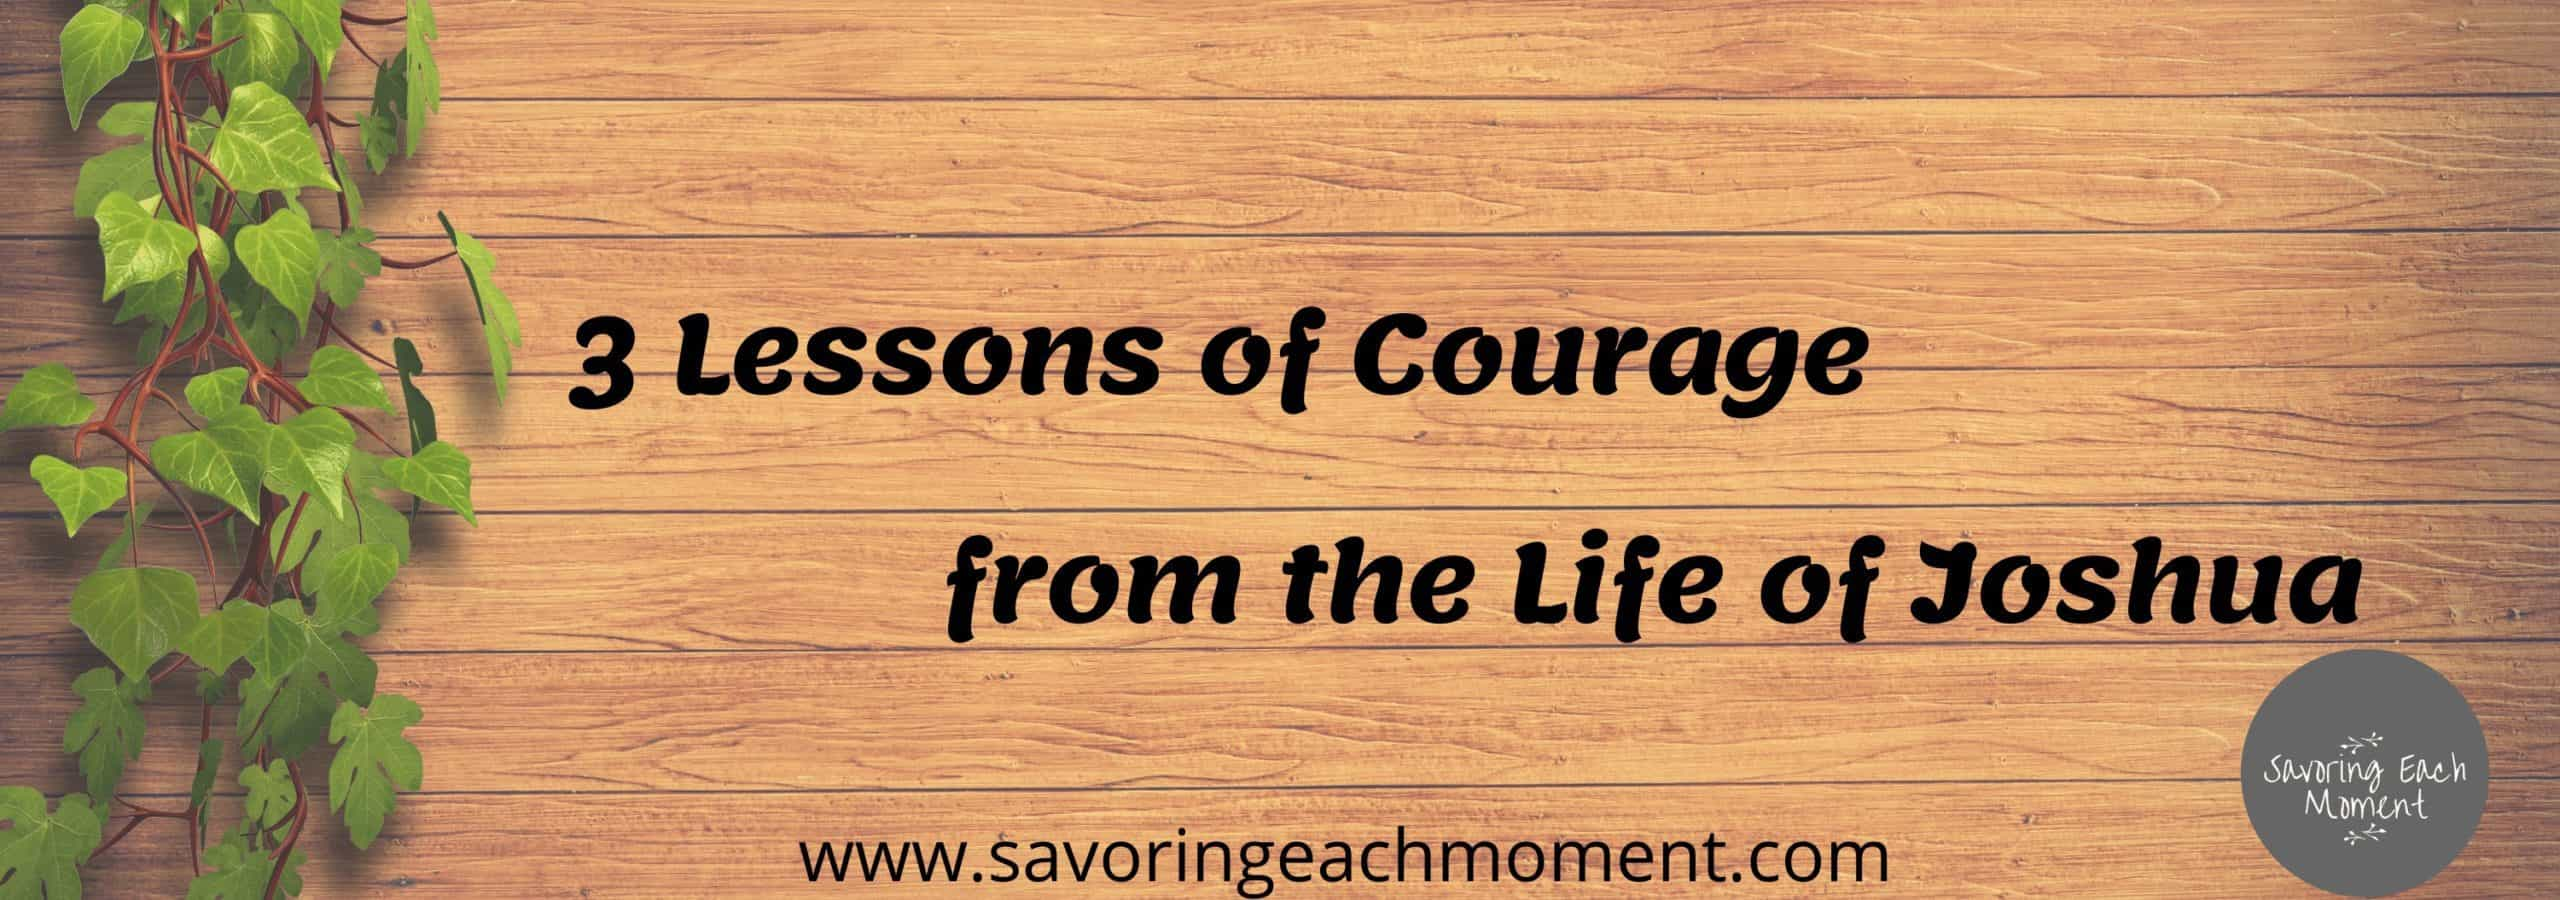 3 Lessons of Courage from the Life of Joshua